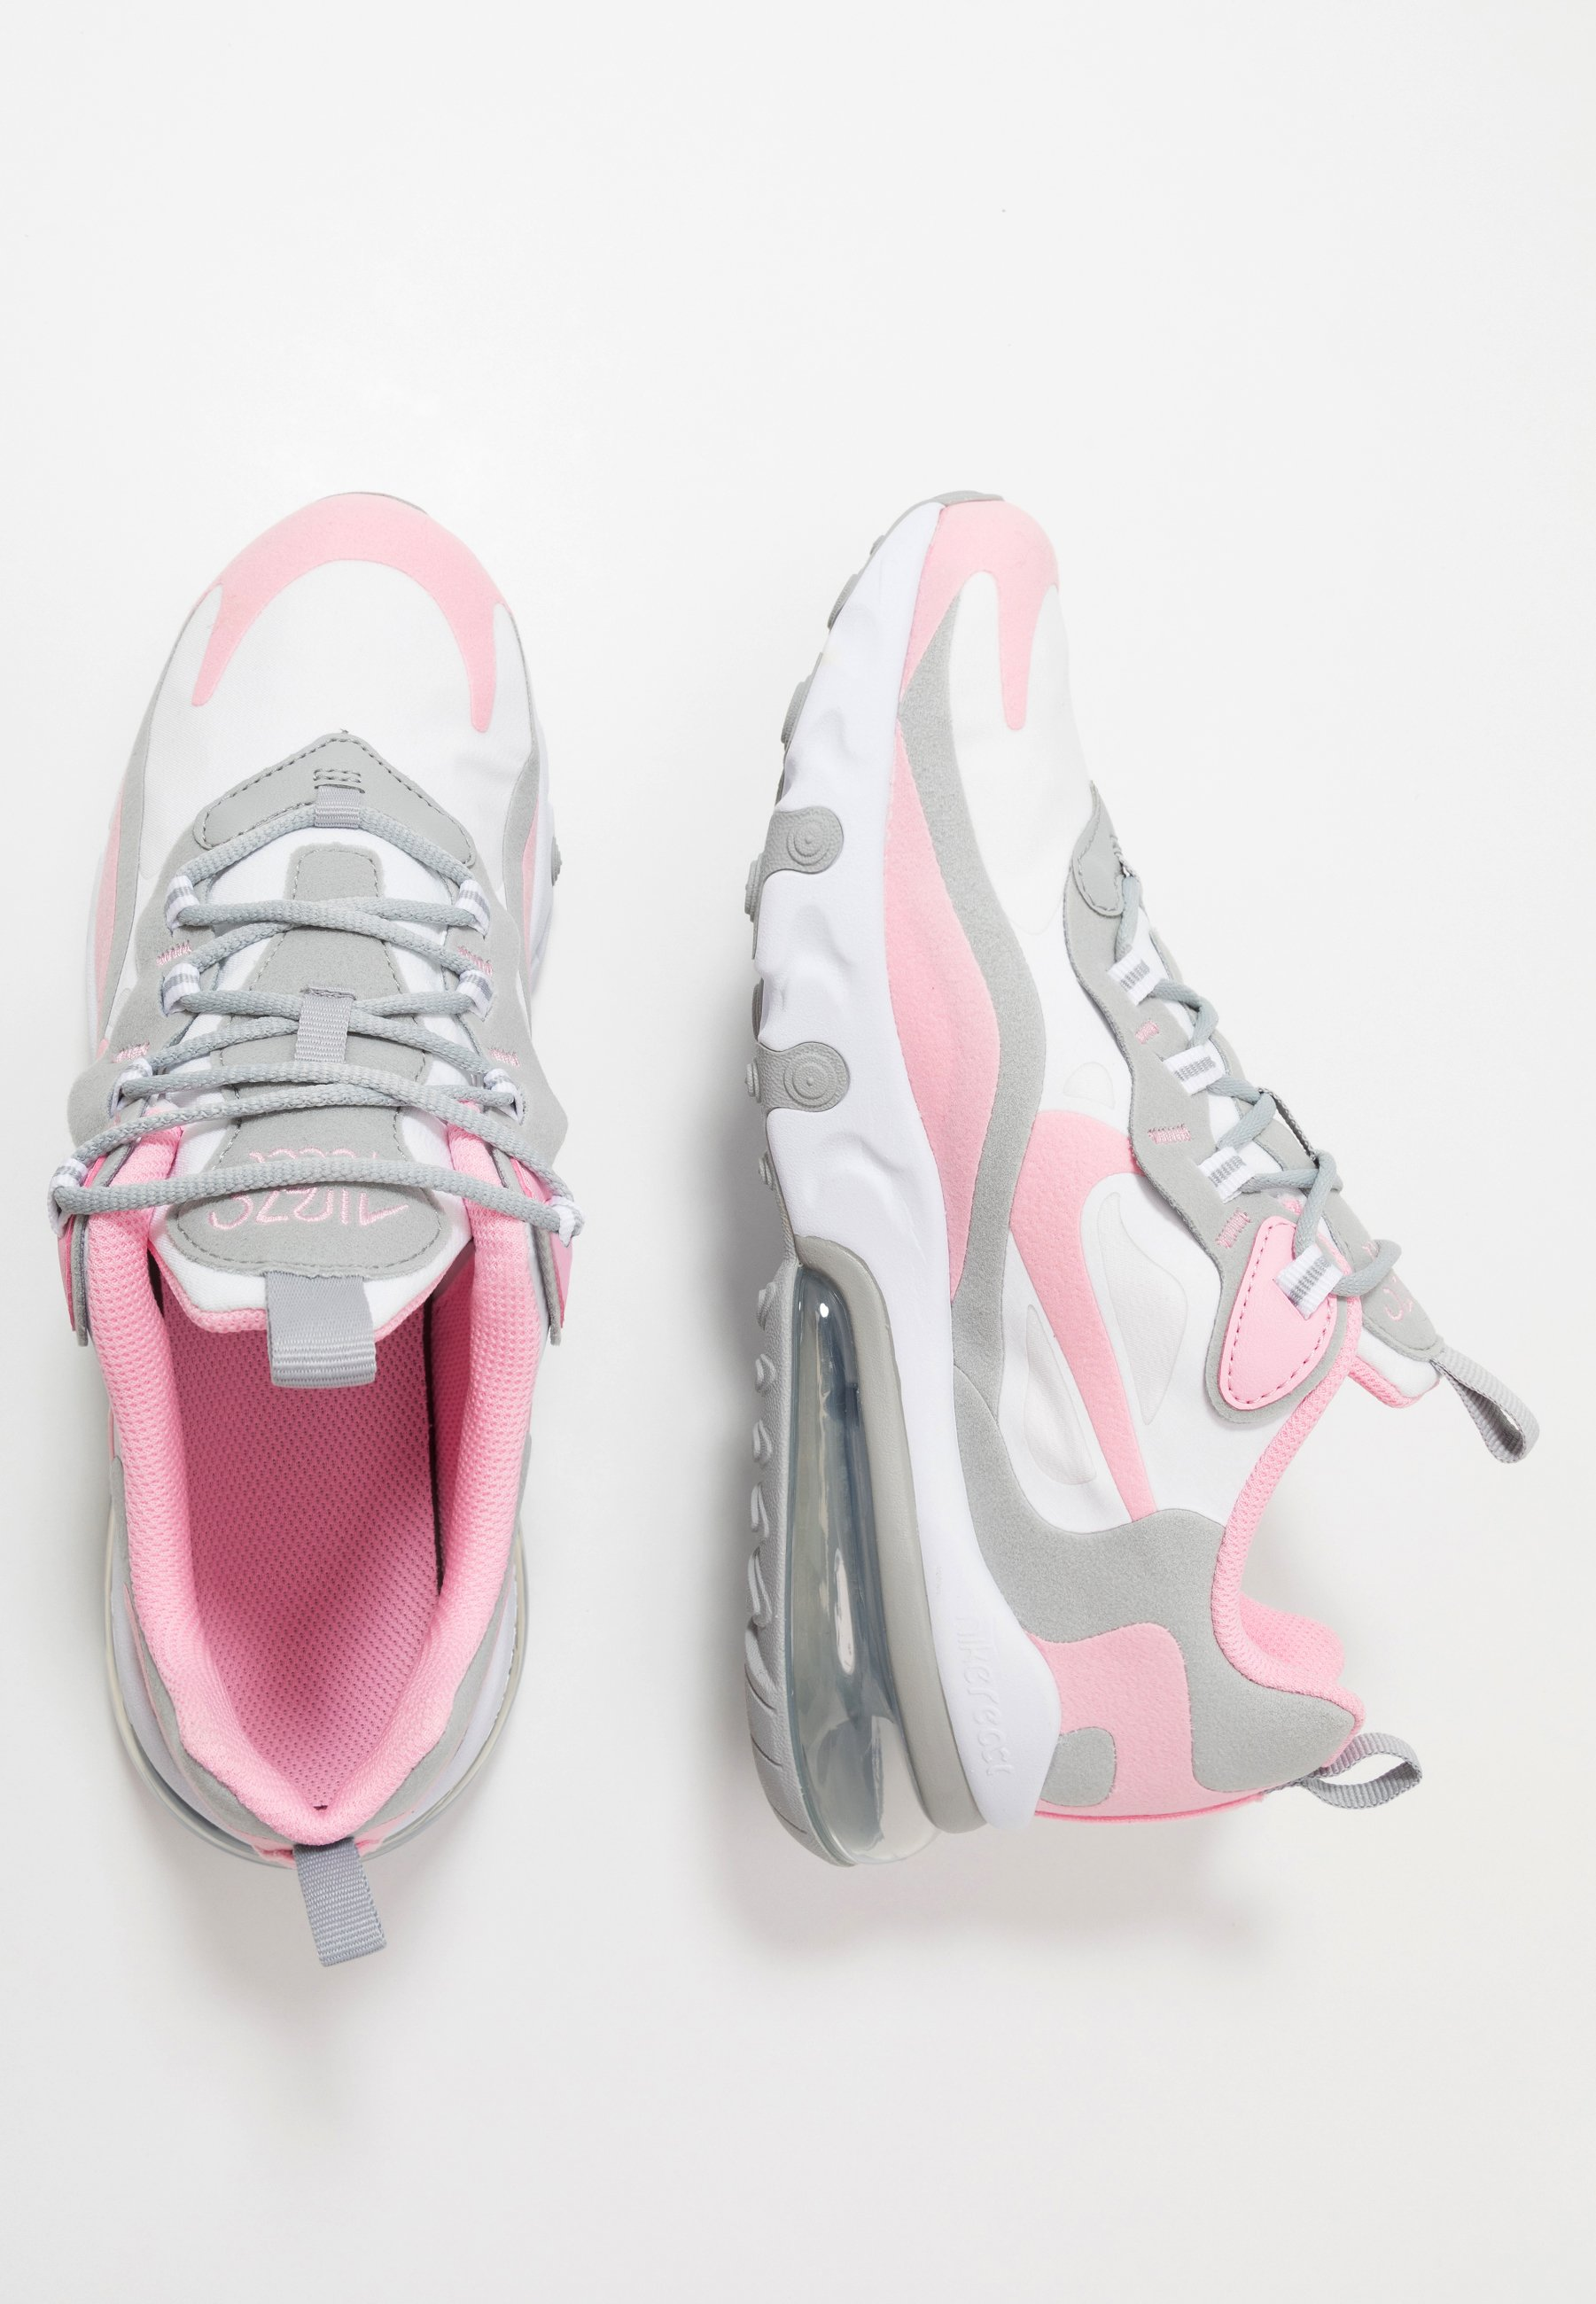 chaussure fille 35 air max 270 rose